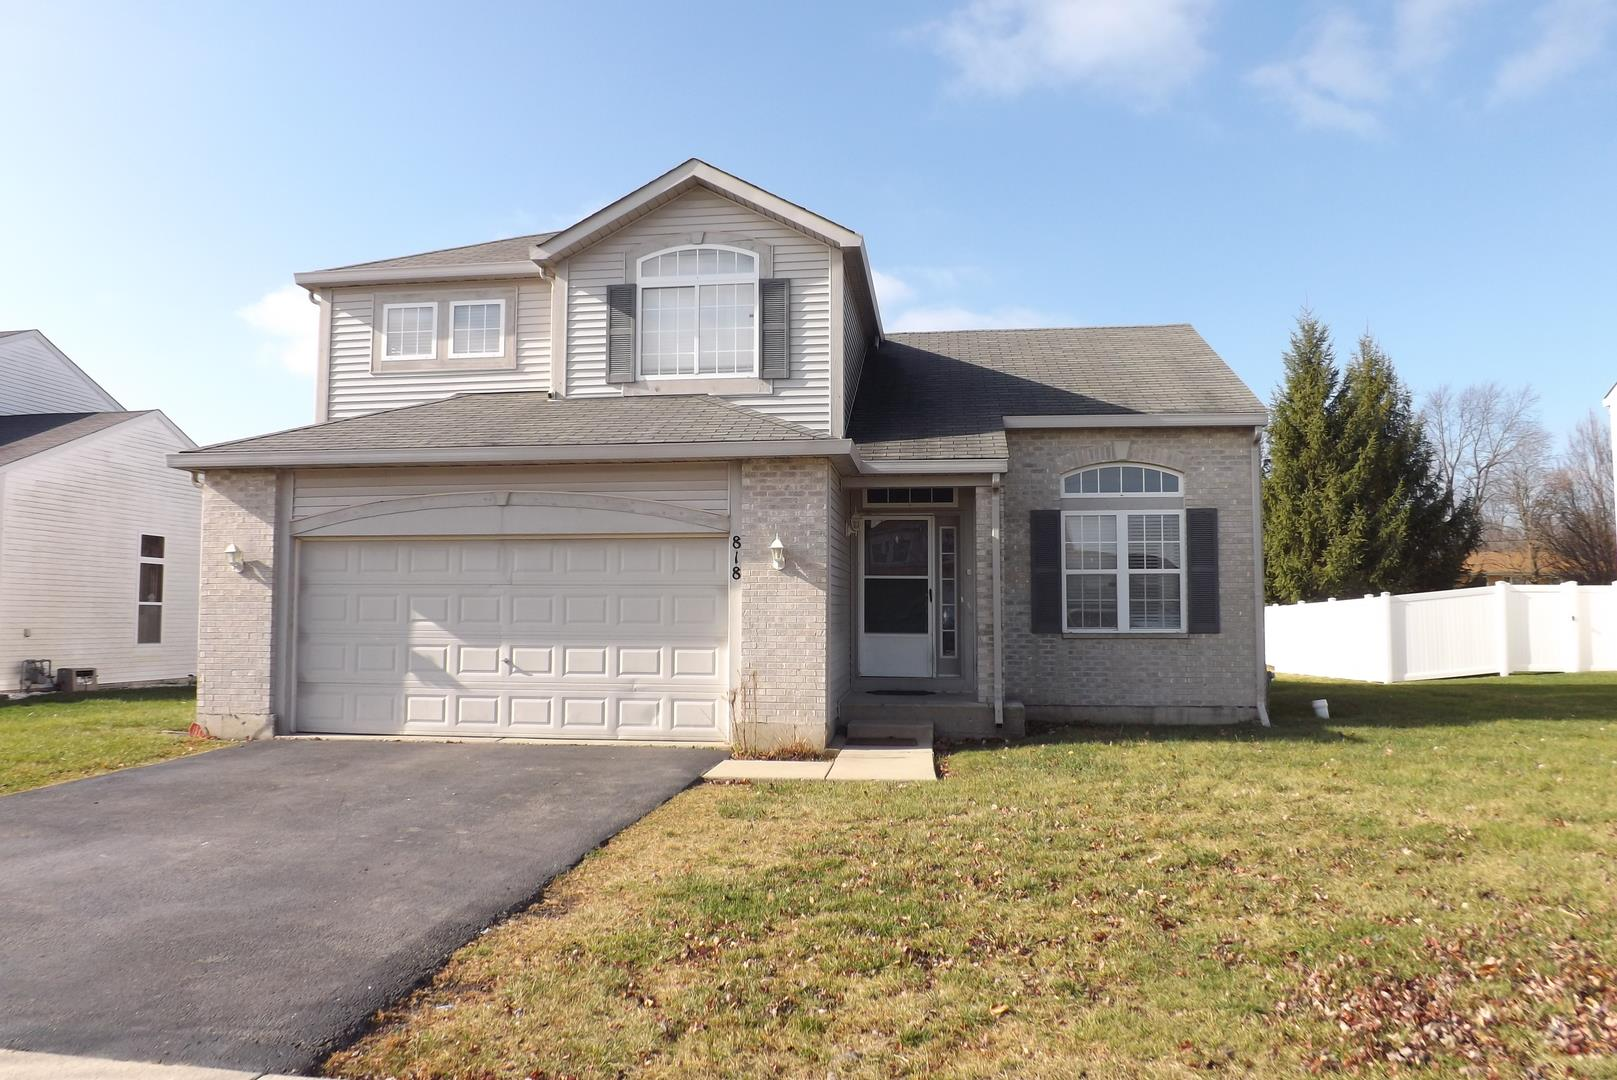 818 TALL GRASS Trail, Matteson, IL 60443 - #: 10939856